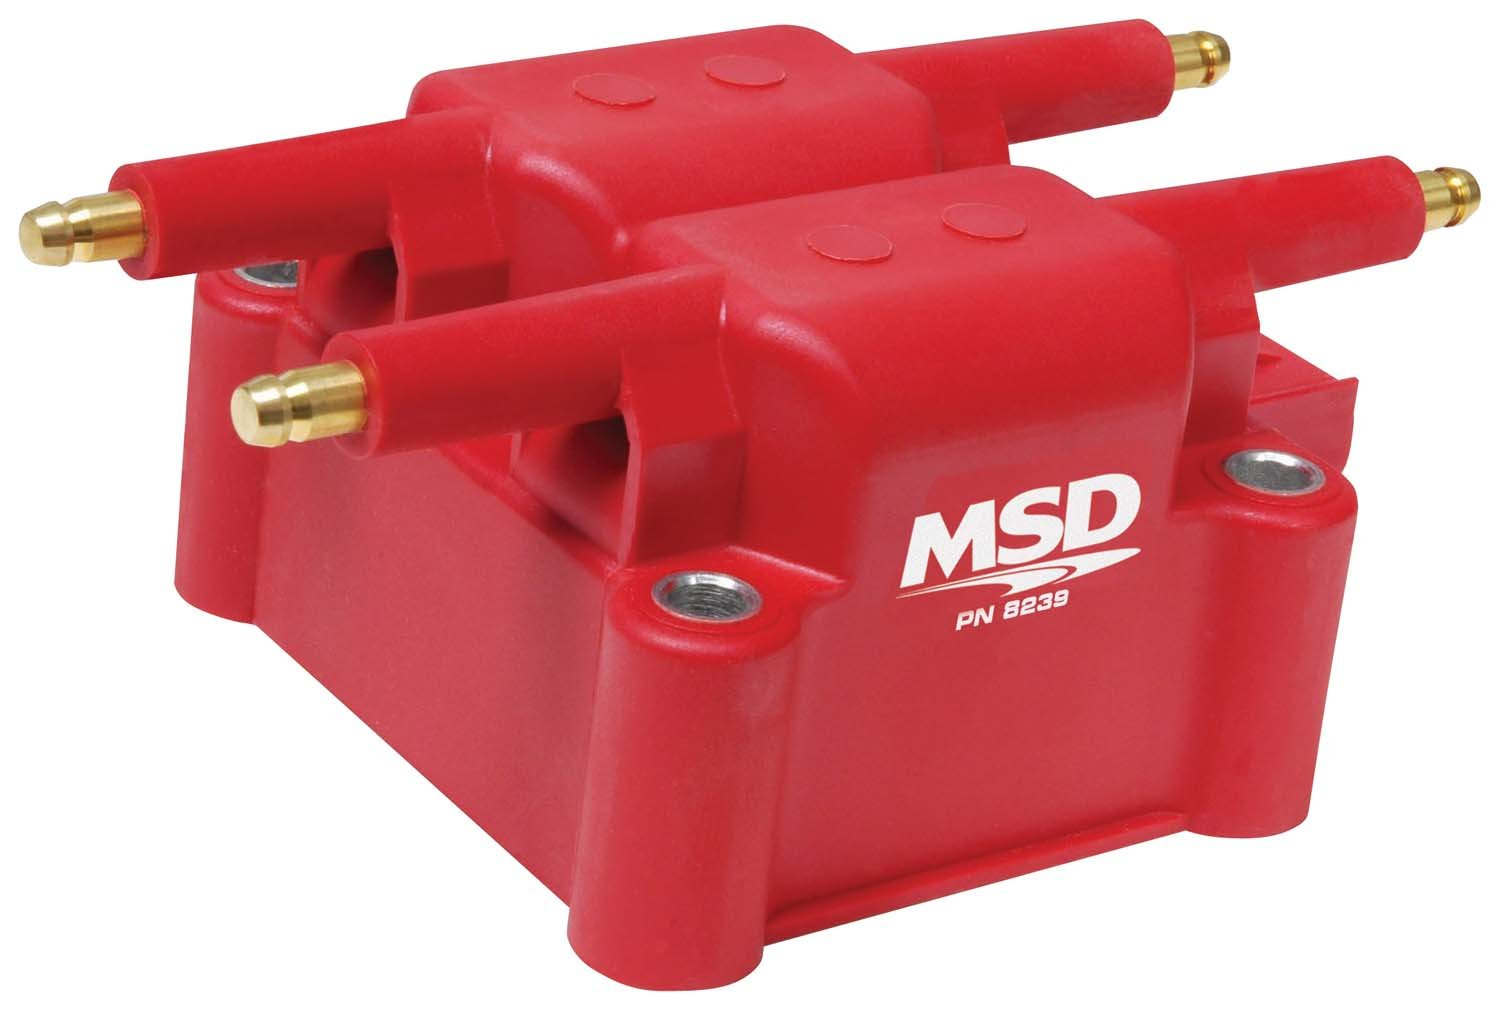 Msd 8239 Mitsubishi Dodge Coil 1996 On A Wiring Diagram For Jeep L6 Larger Image